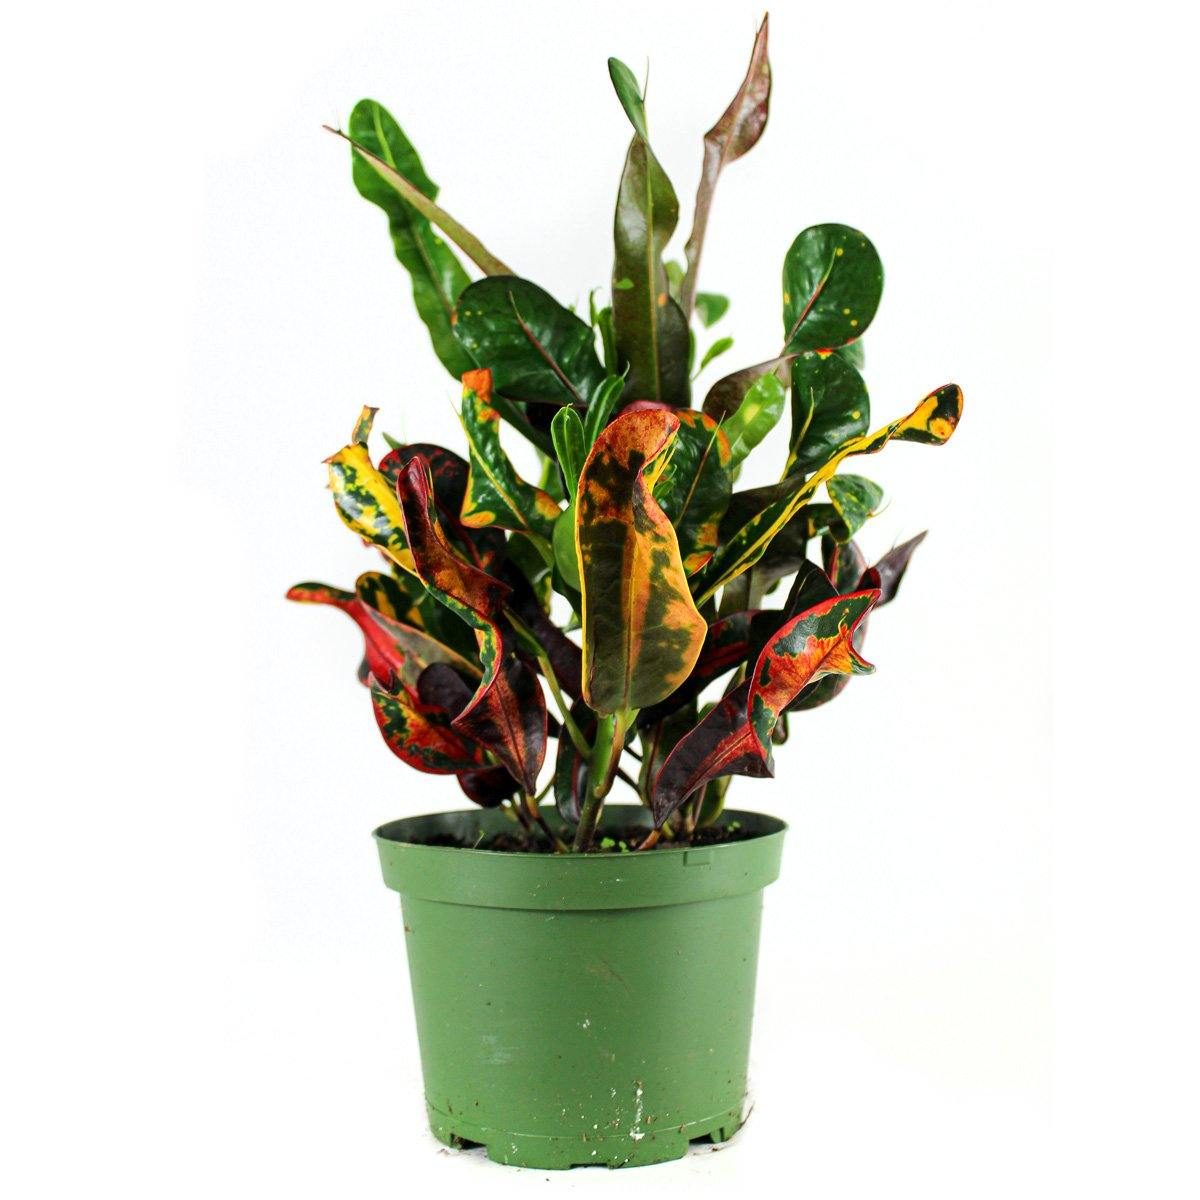 "Croton (3.5"" / 6"" / 10"" Grower Pots) - Geoponics Inc"